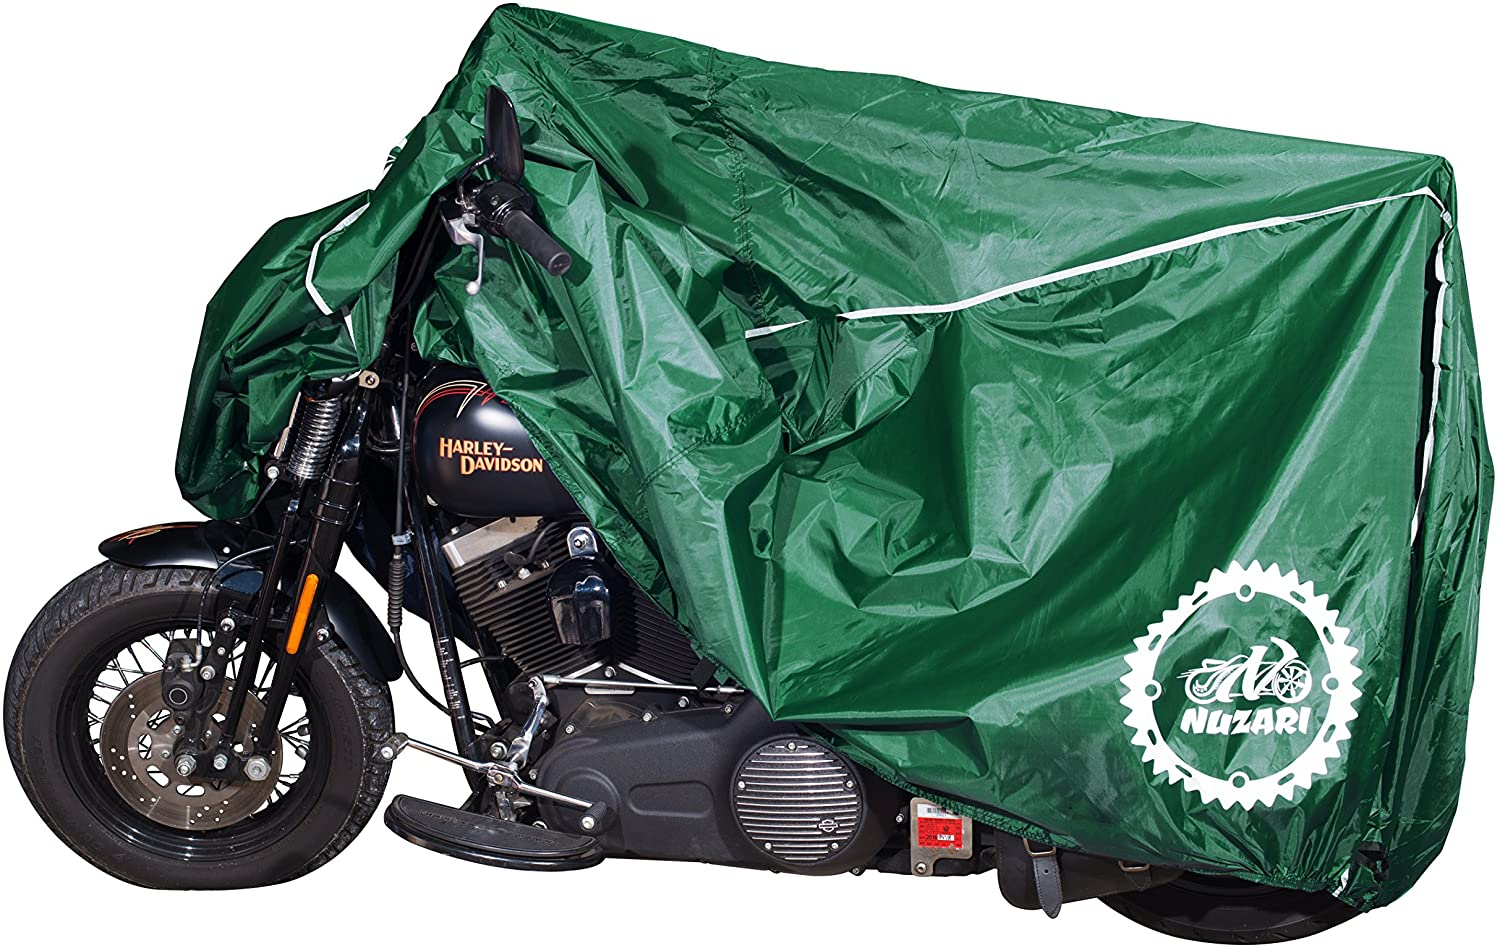 Nuzari Heavy Duty Motorcycle Cover - Perfect Waterproof Motorcycle Cover - Harley Davidson Motorcycle Cover - Strong Bike Cover XL